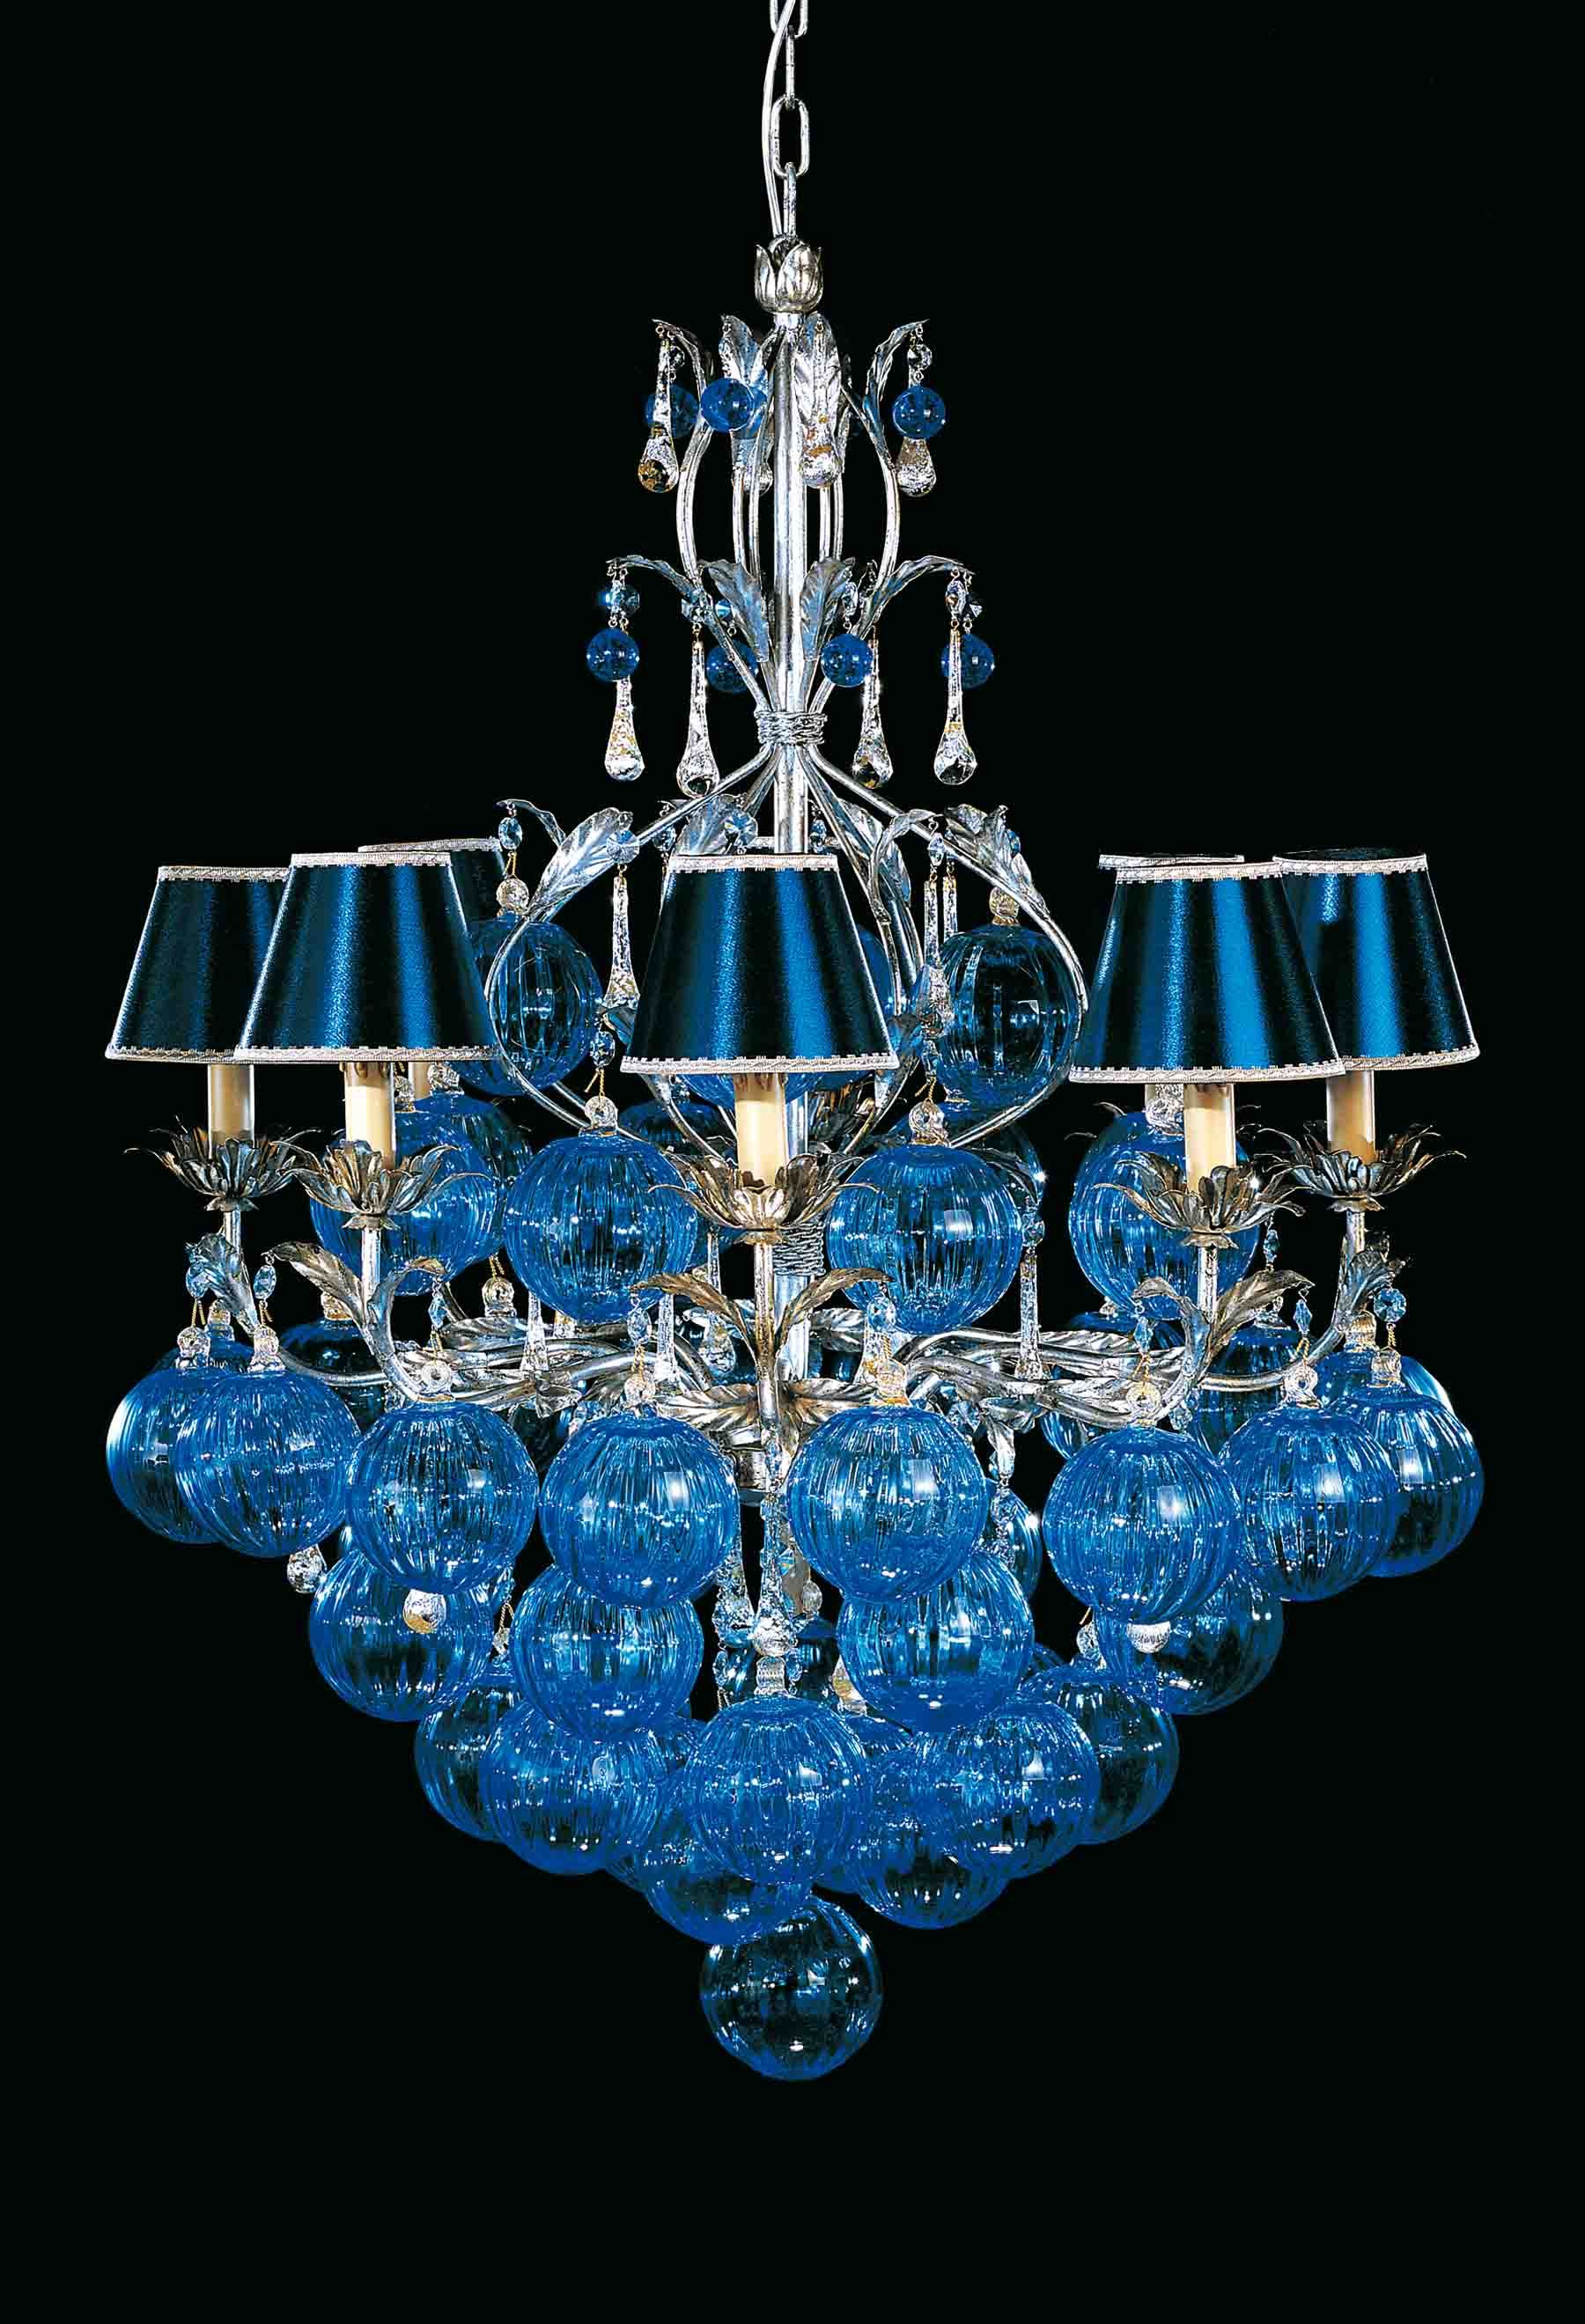 Chandelier with Blue Blown Murano Glass Spheres by